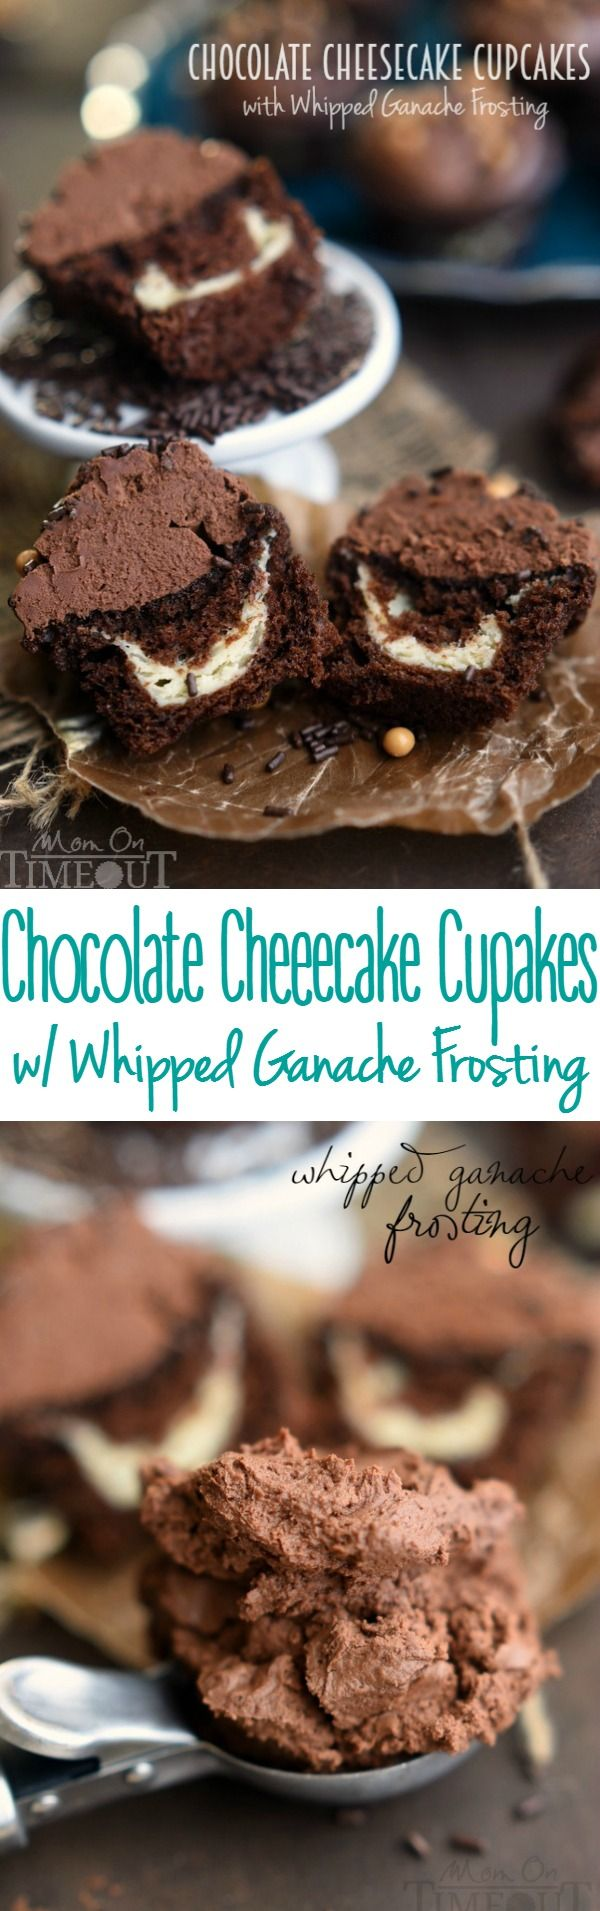 These Chocolate Cheesecake Cupcakes recipe with Whipped Ganache Frosting are sure to cure that chocolate craving! These cupcakes are the real deal - and that frosting - pure heaven! | MomOnTimeout.com | #PinThatTwist